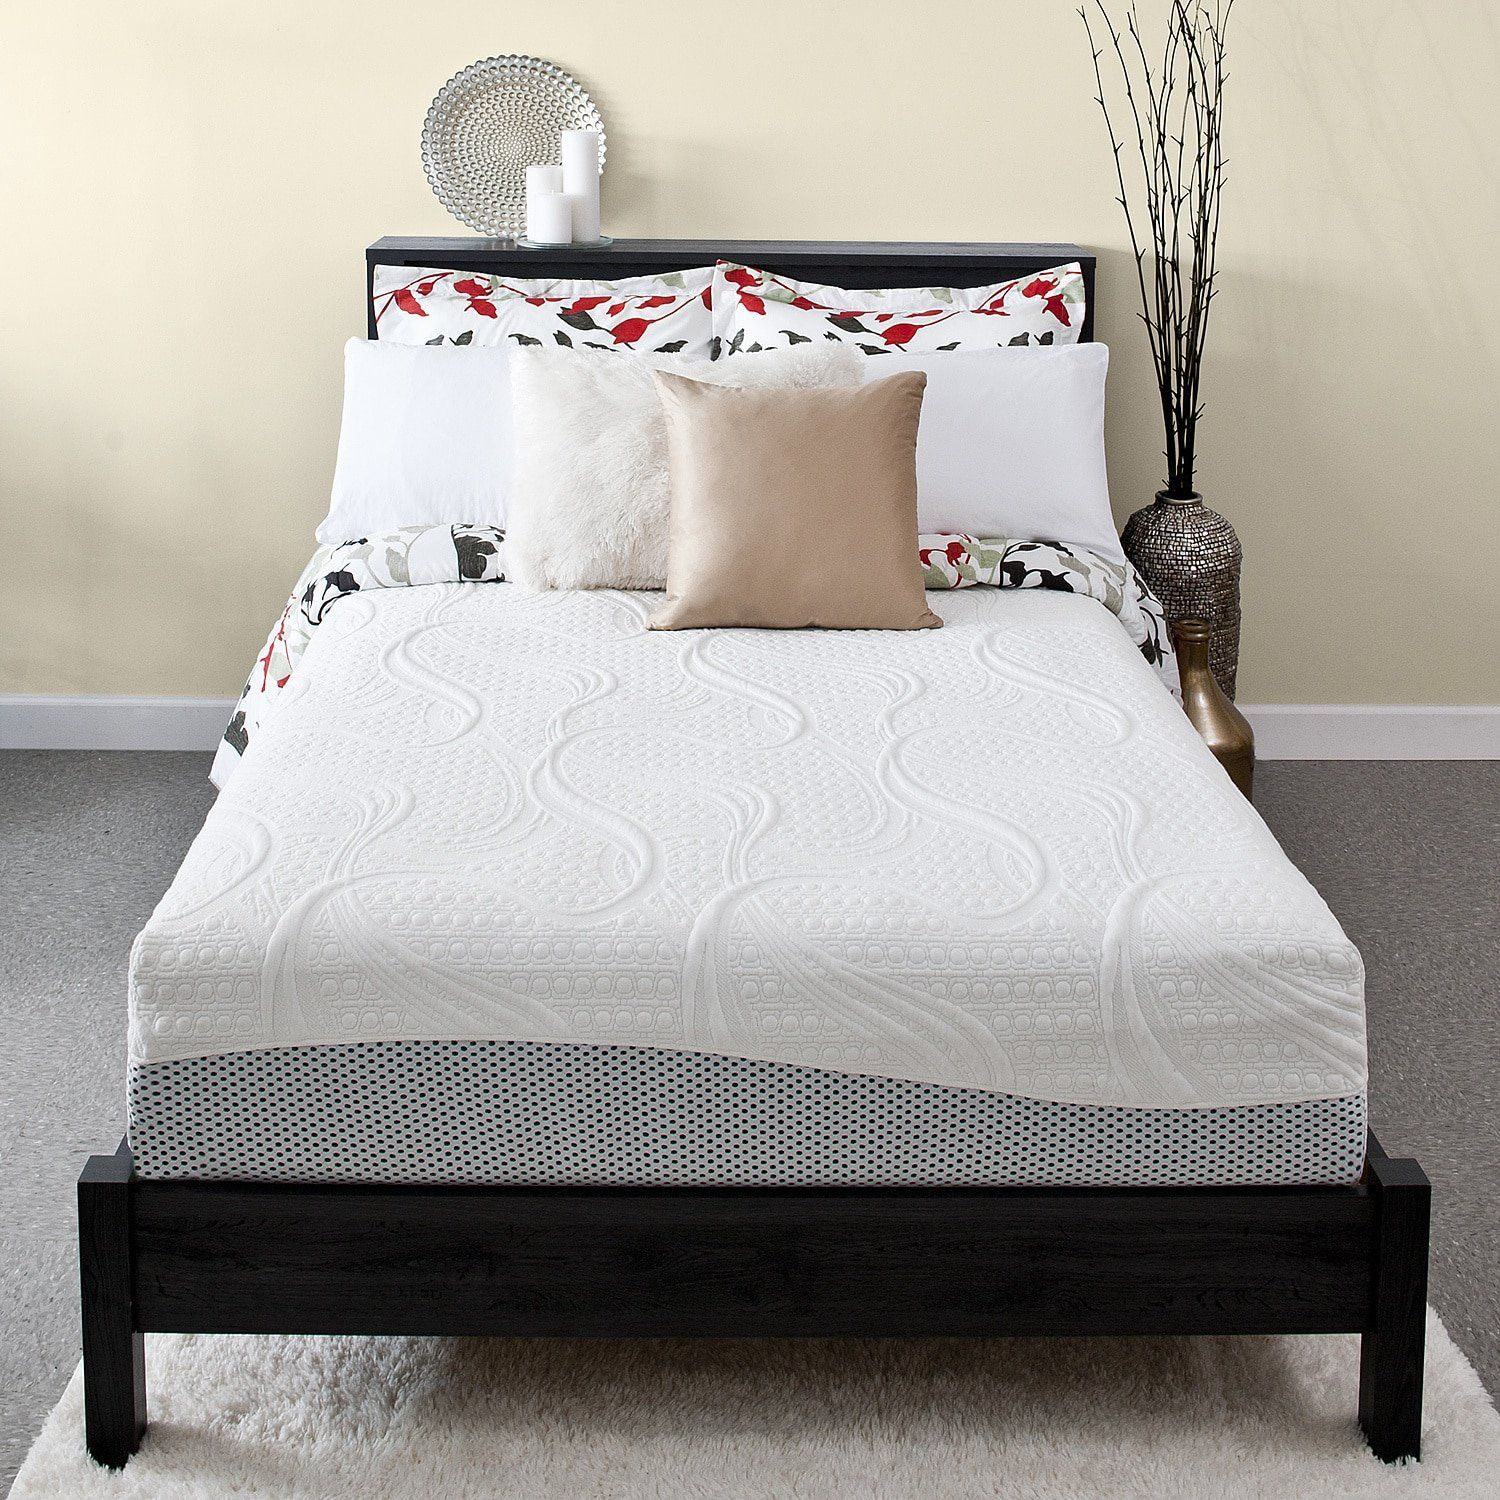 Priage 12 Memory Foam Mattress King White * Learn more by